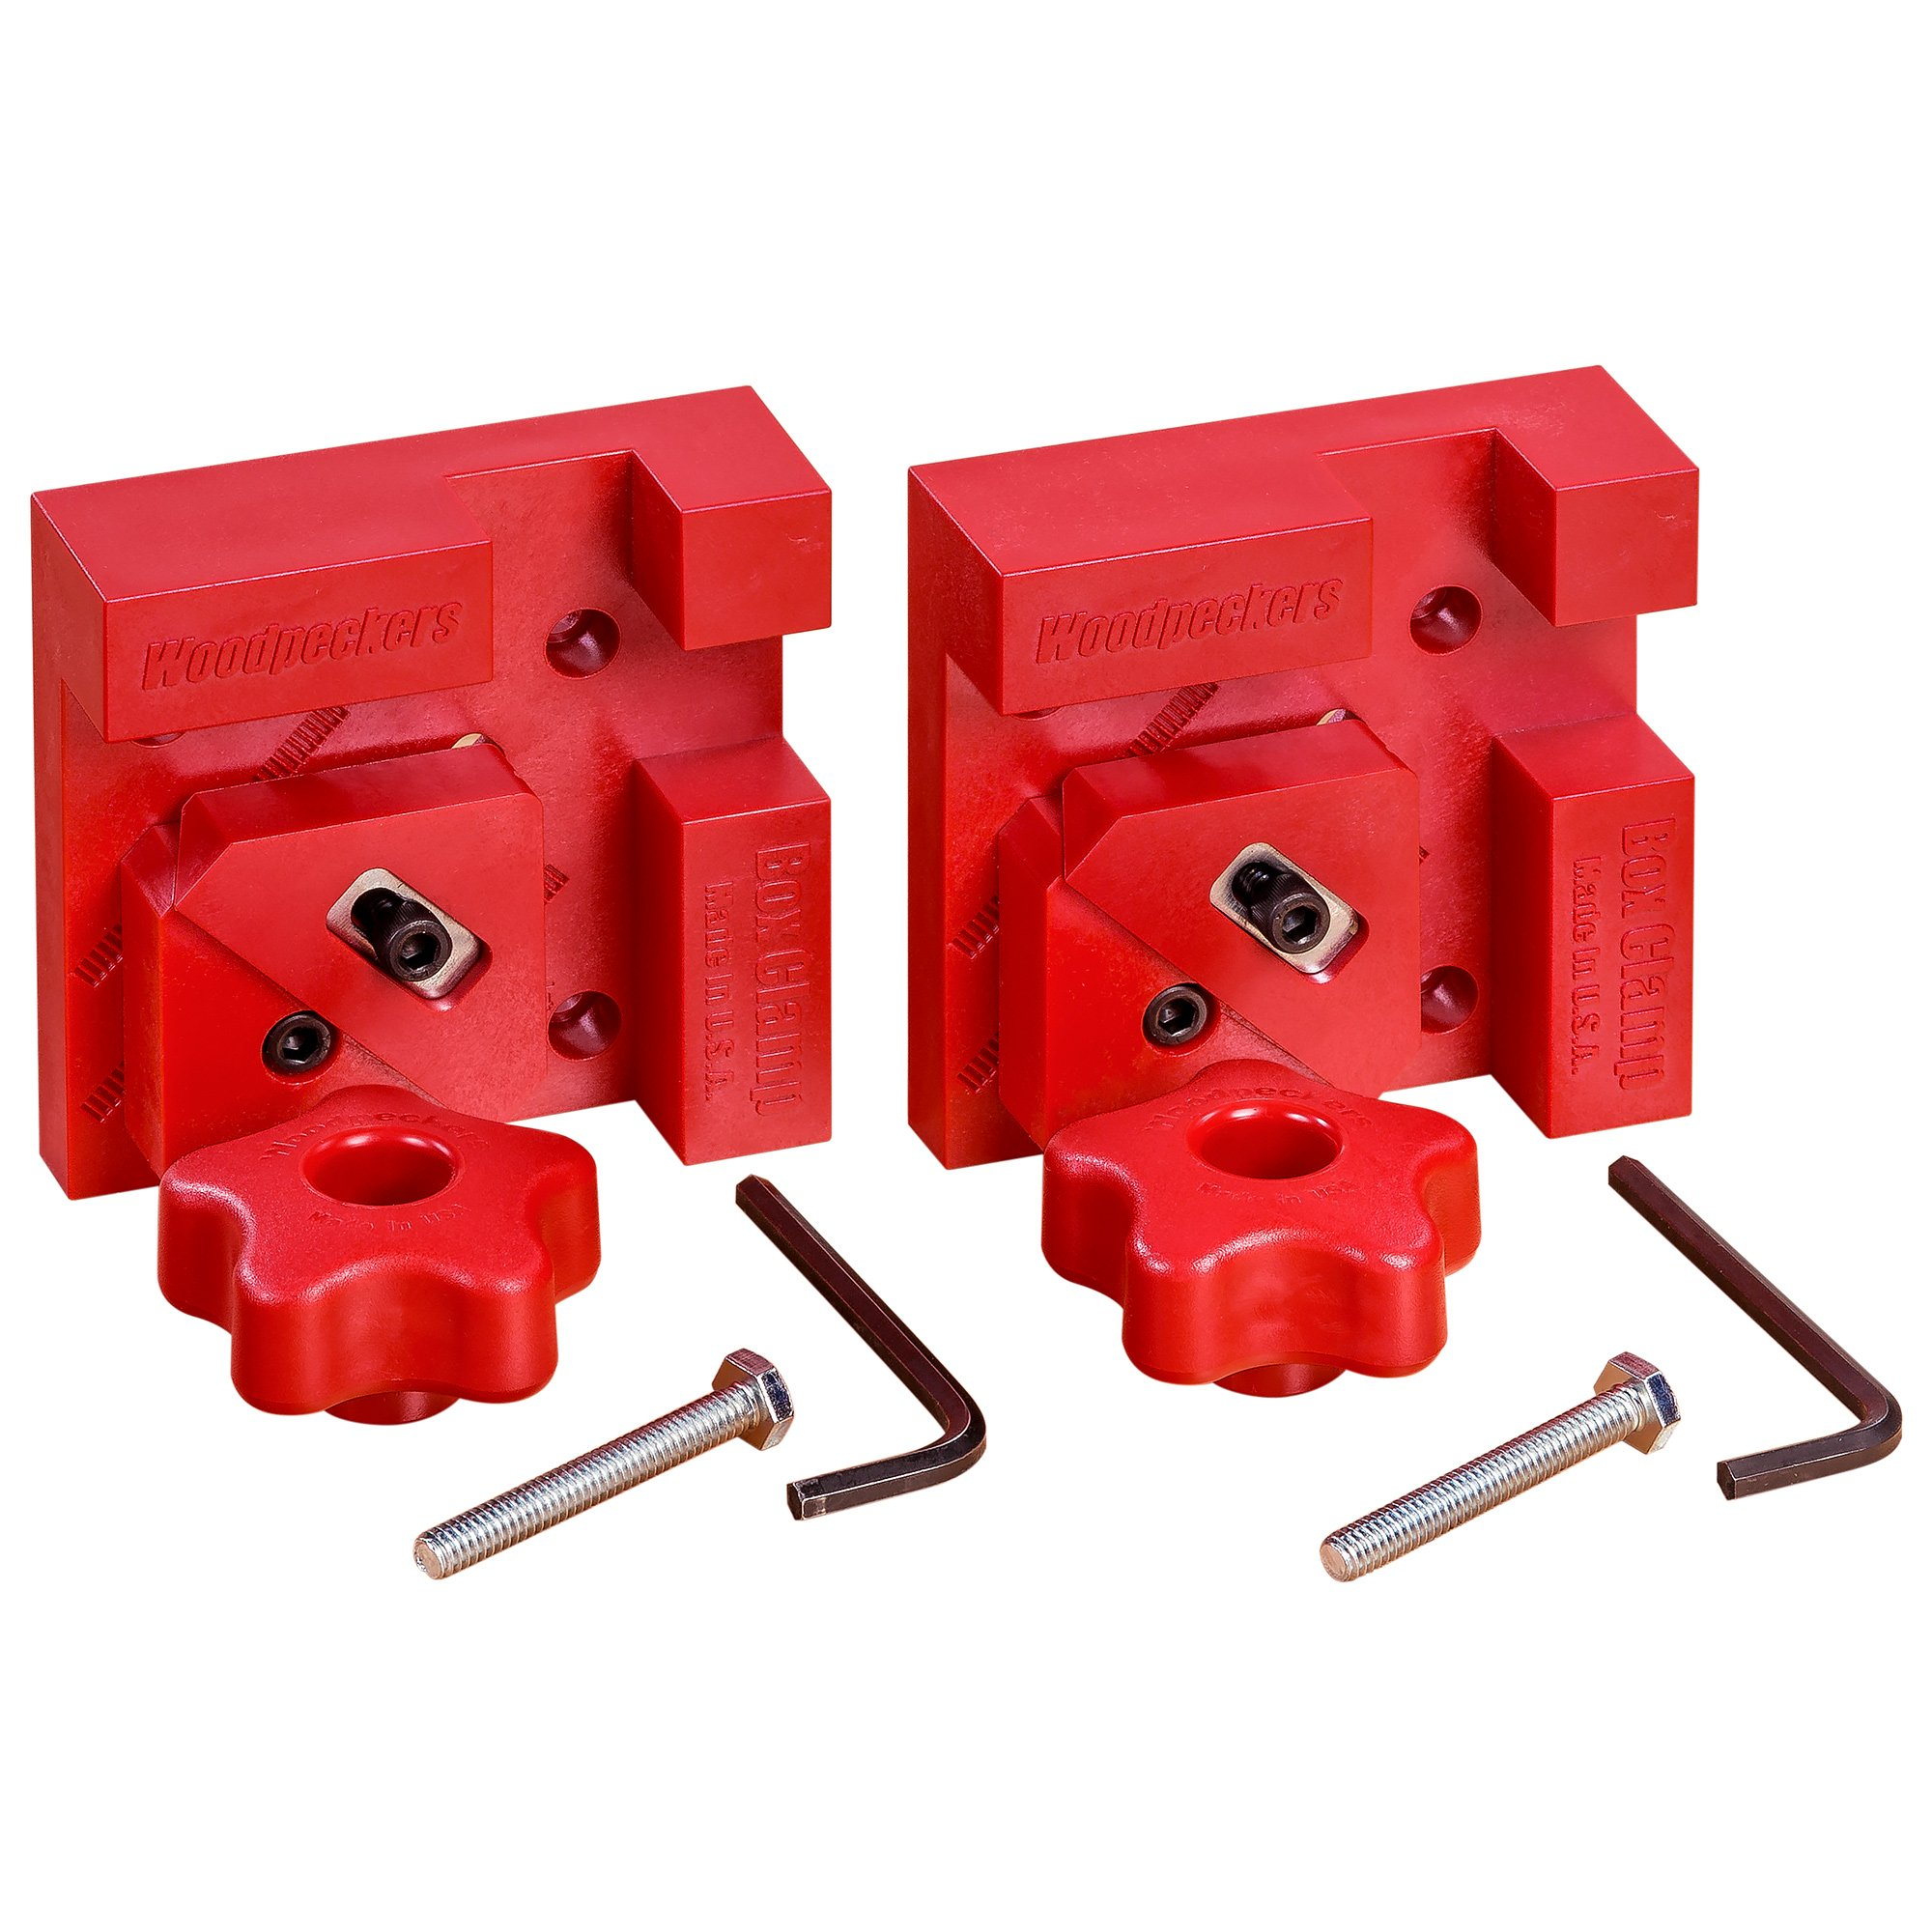 Woodpeckers Precision Woodworking Tools BC4-M2X2 Box Clamp-M2-Pair by Woodpeckers (Image #1)